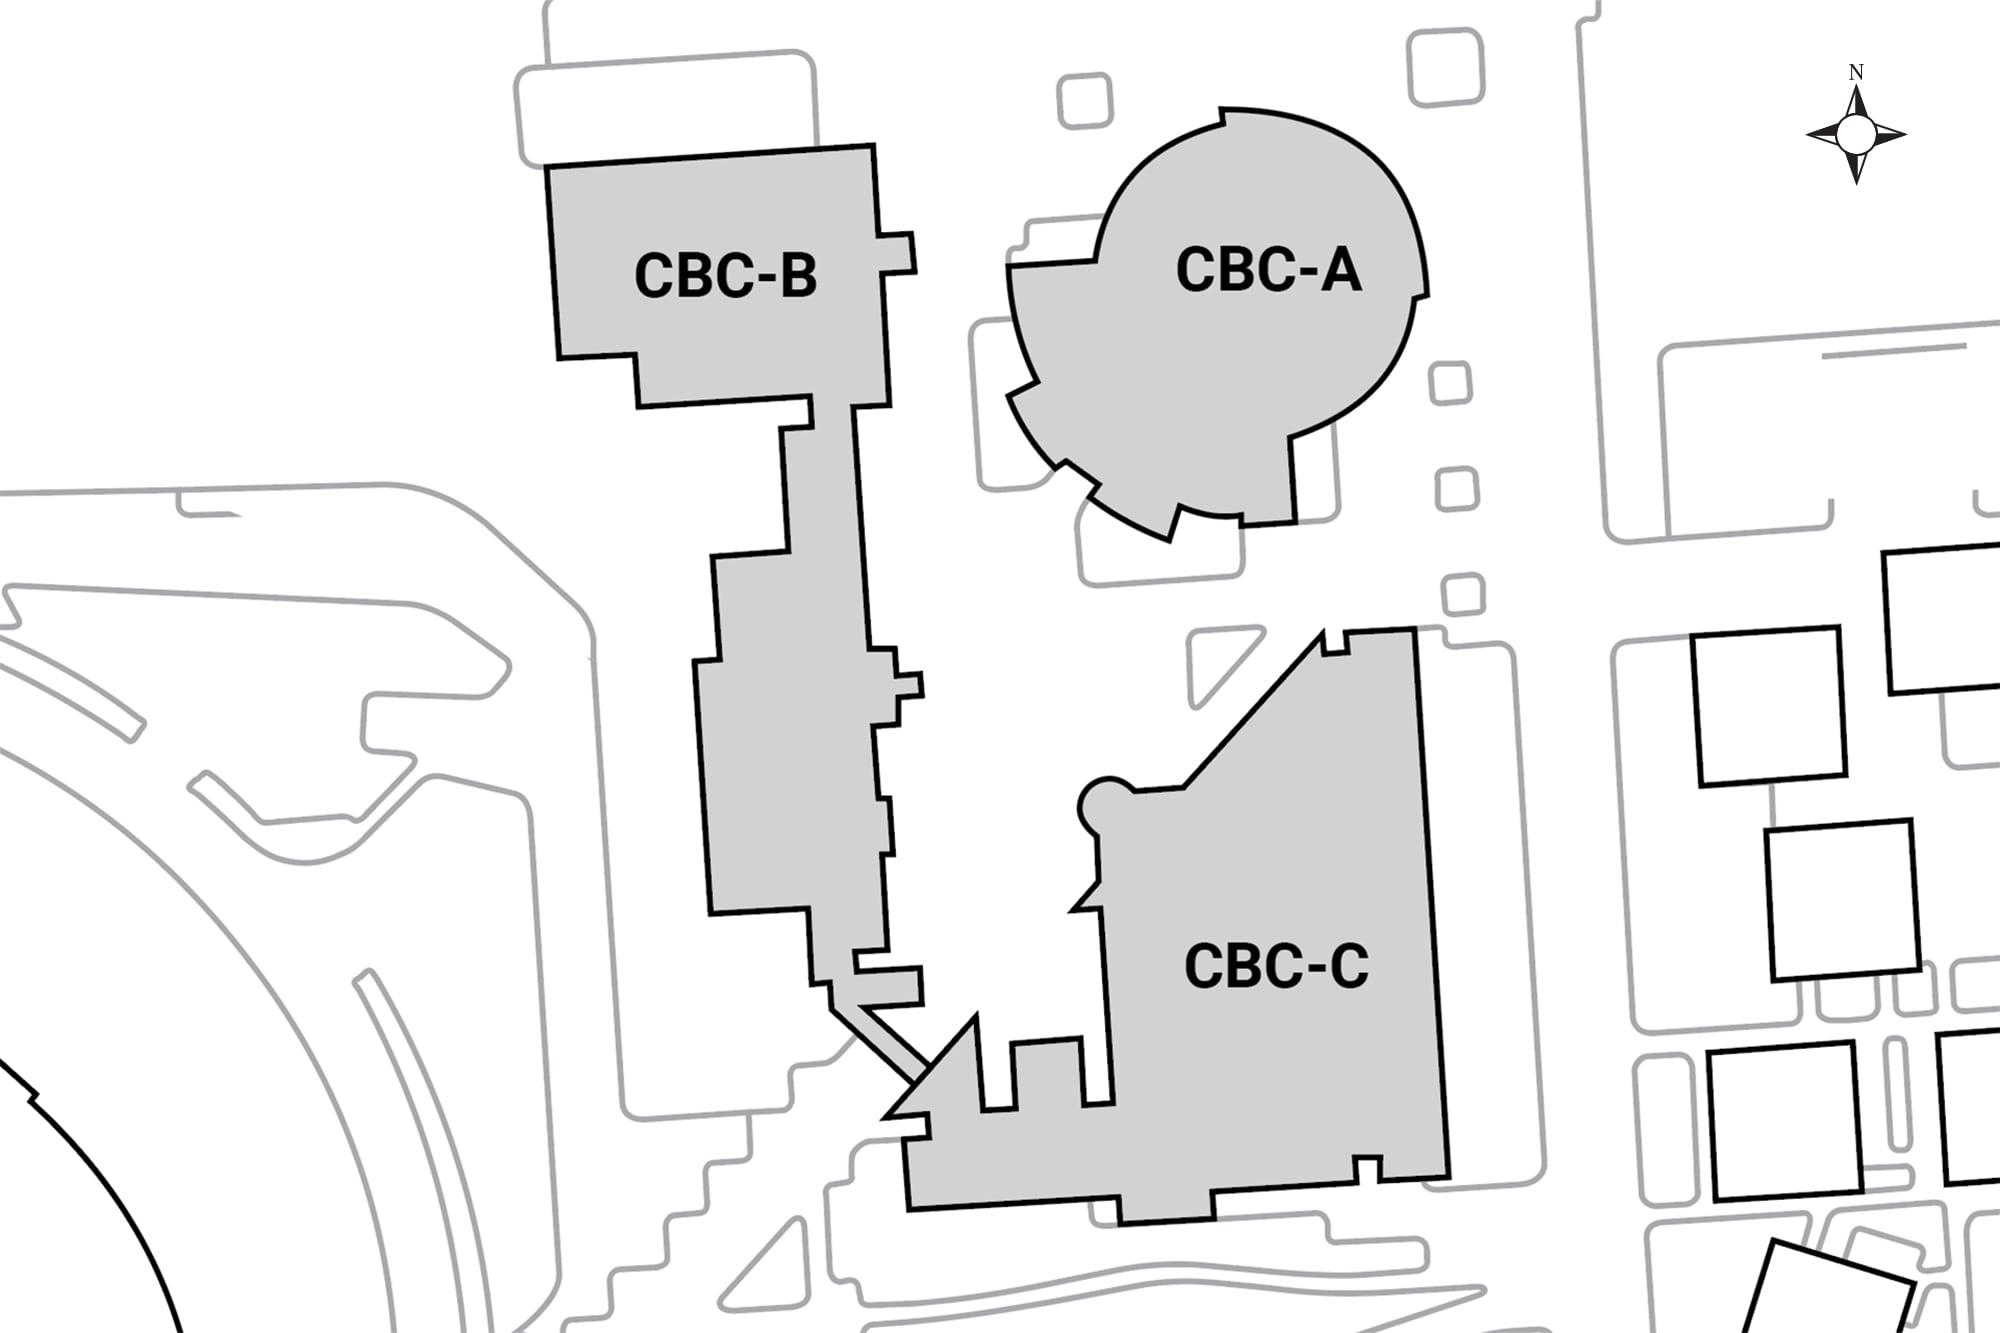 Aerial map buildings located in this complex.